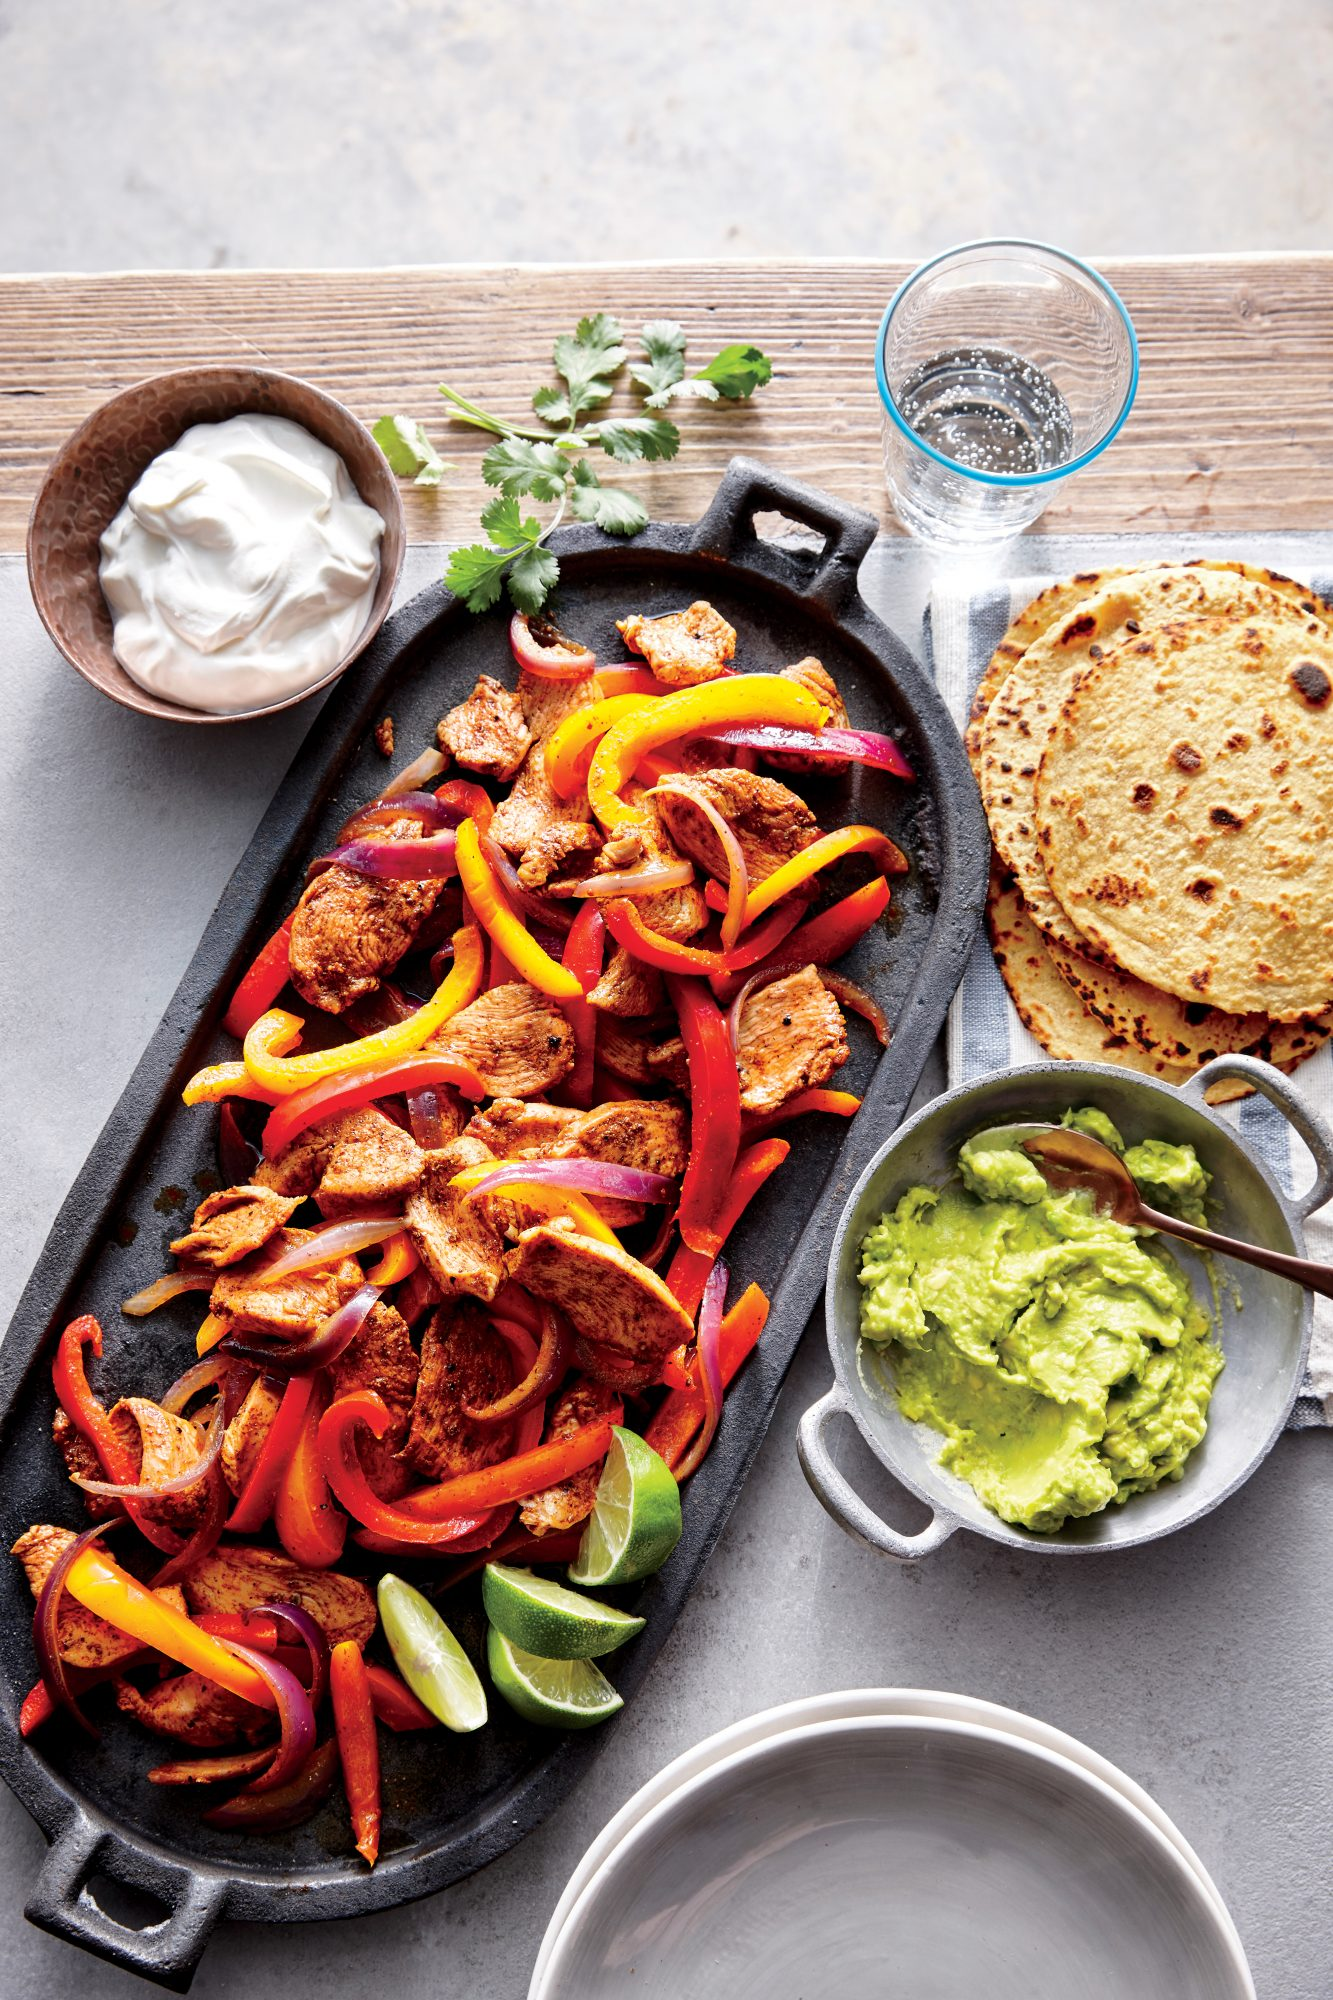 How to Make the Best Fajitas of Your Life